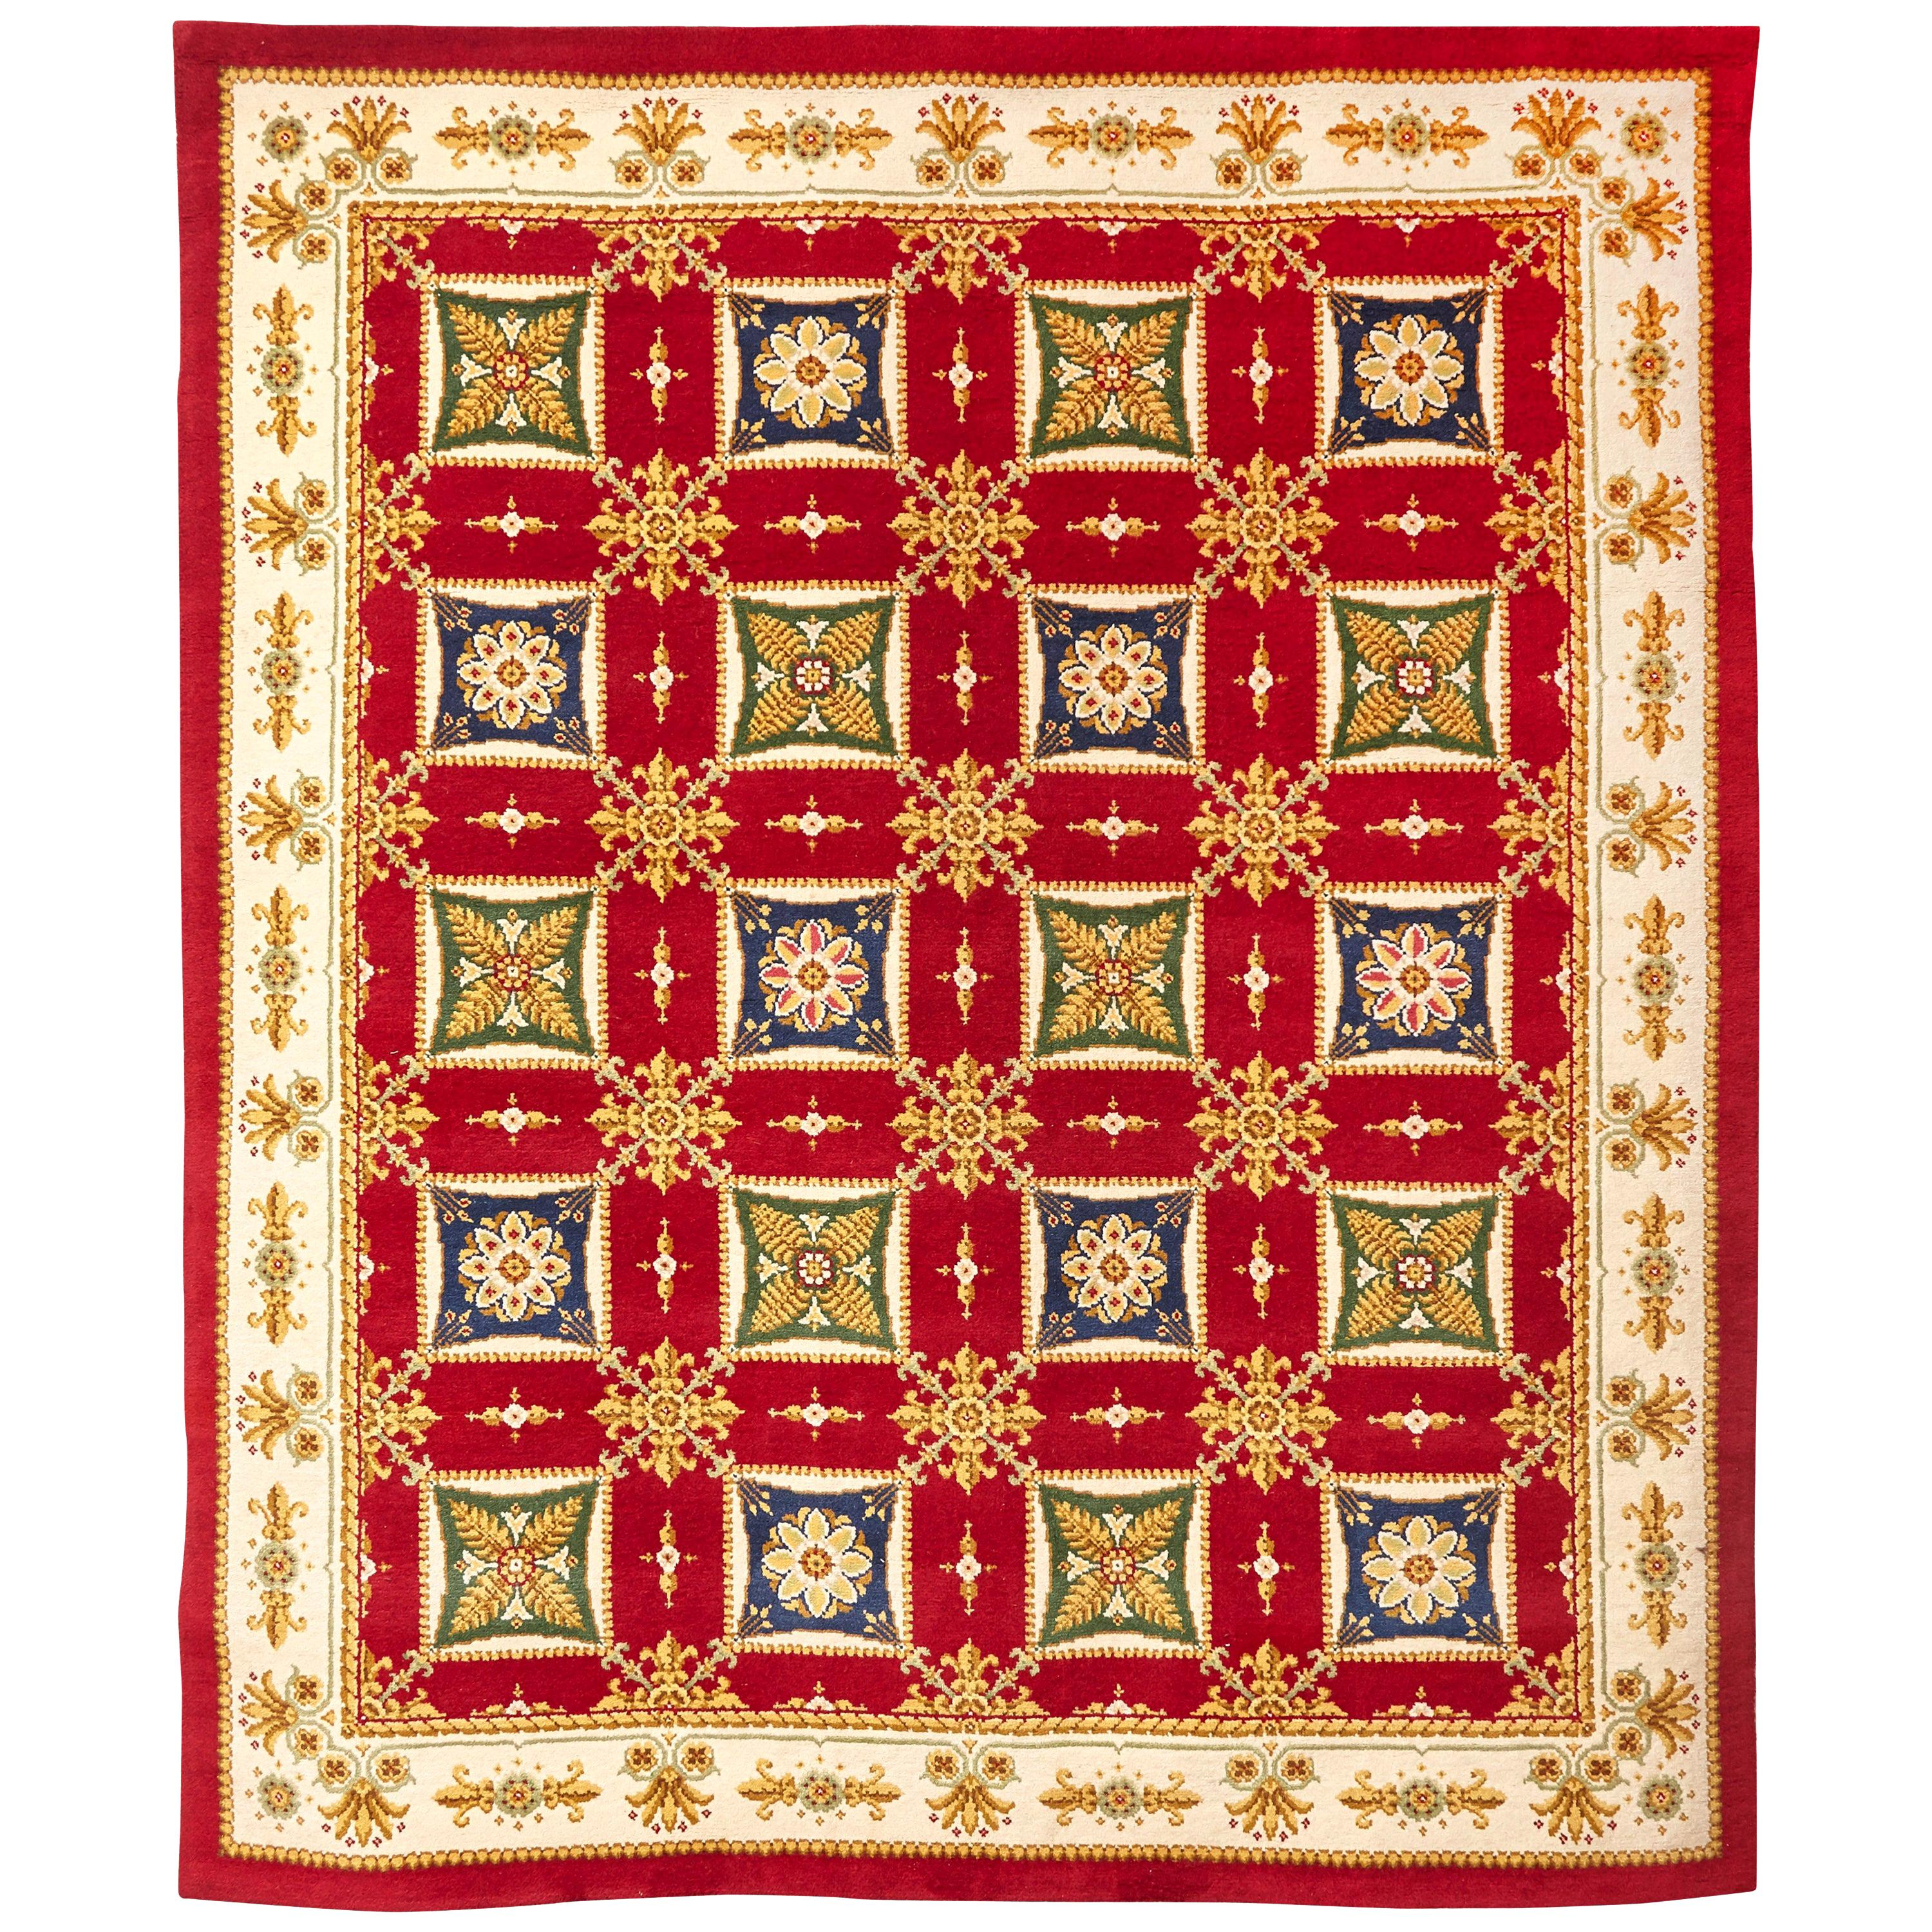 Empire Hand Knotted Wool Large Rug, circa 1970